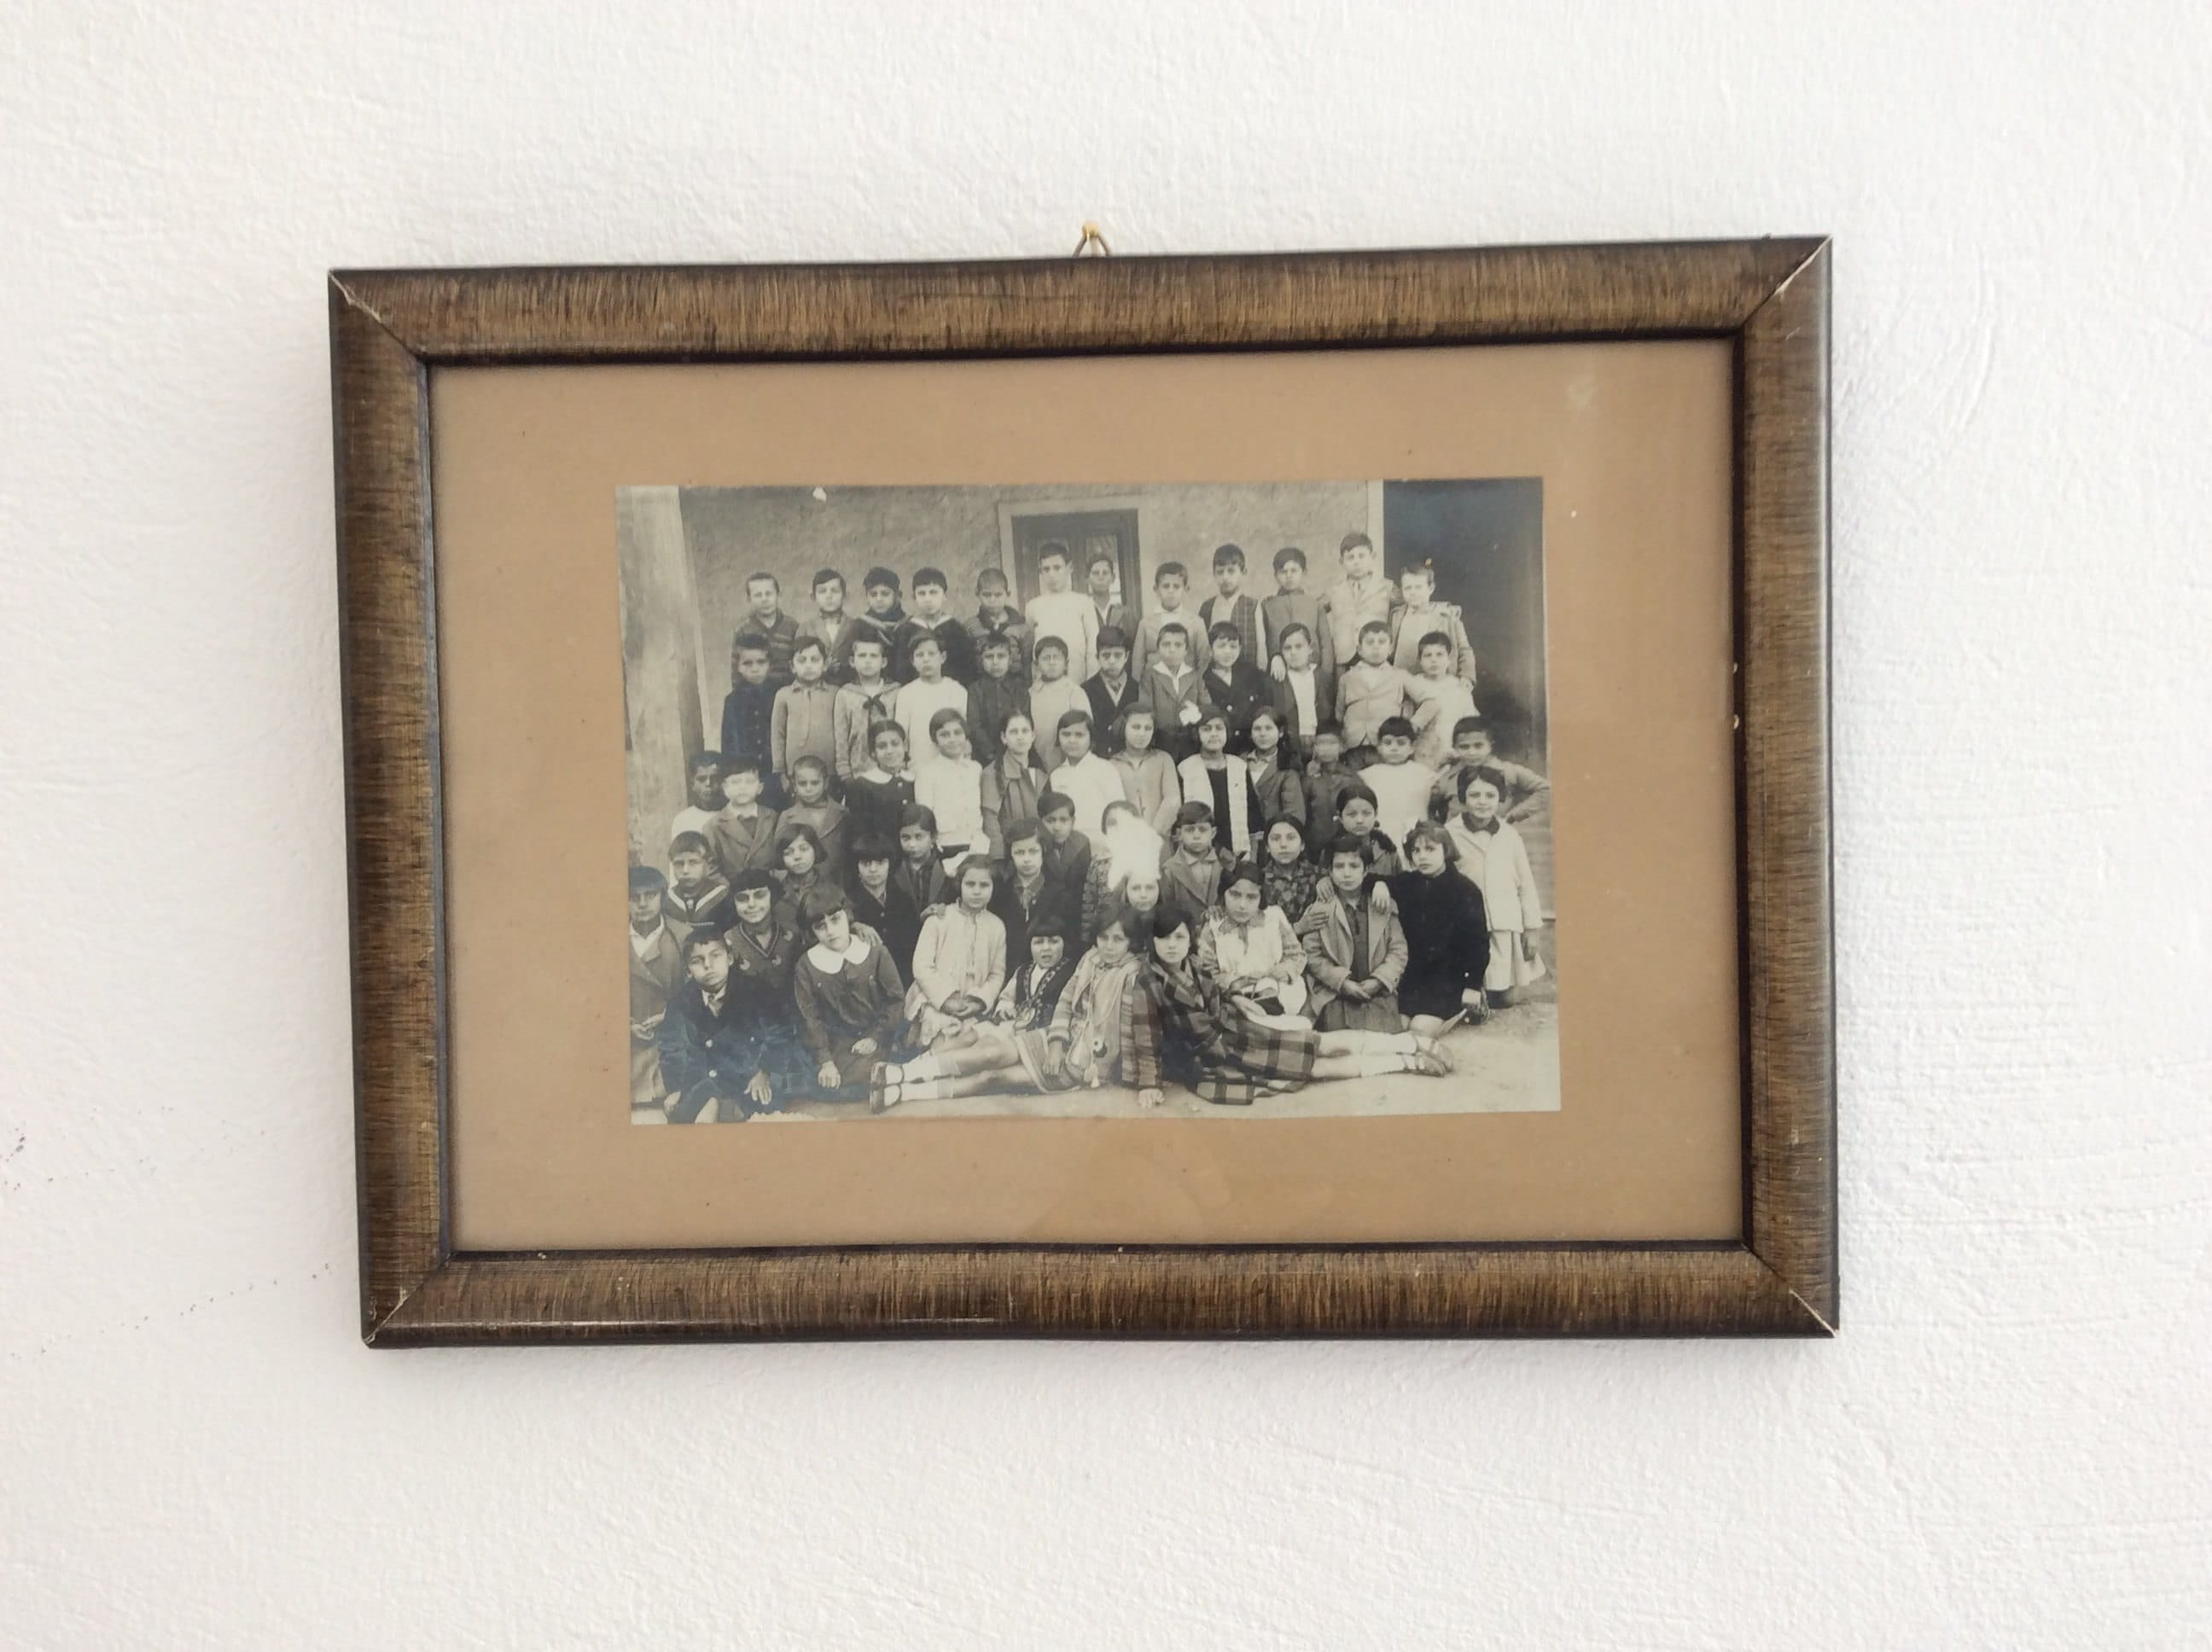 Vintage Black and White Photo School House Group Students Children Digital Download Antique Wall